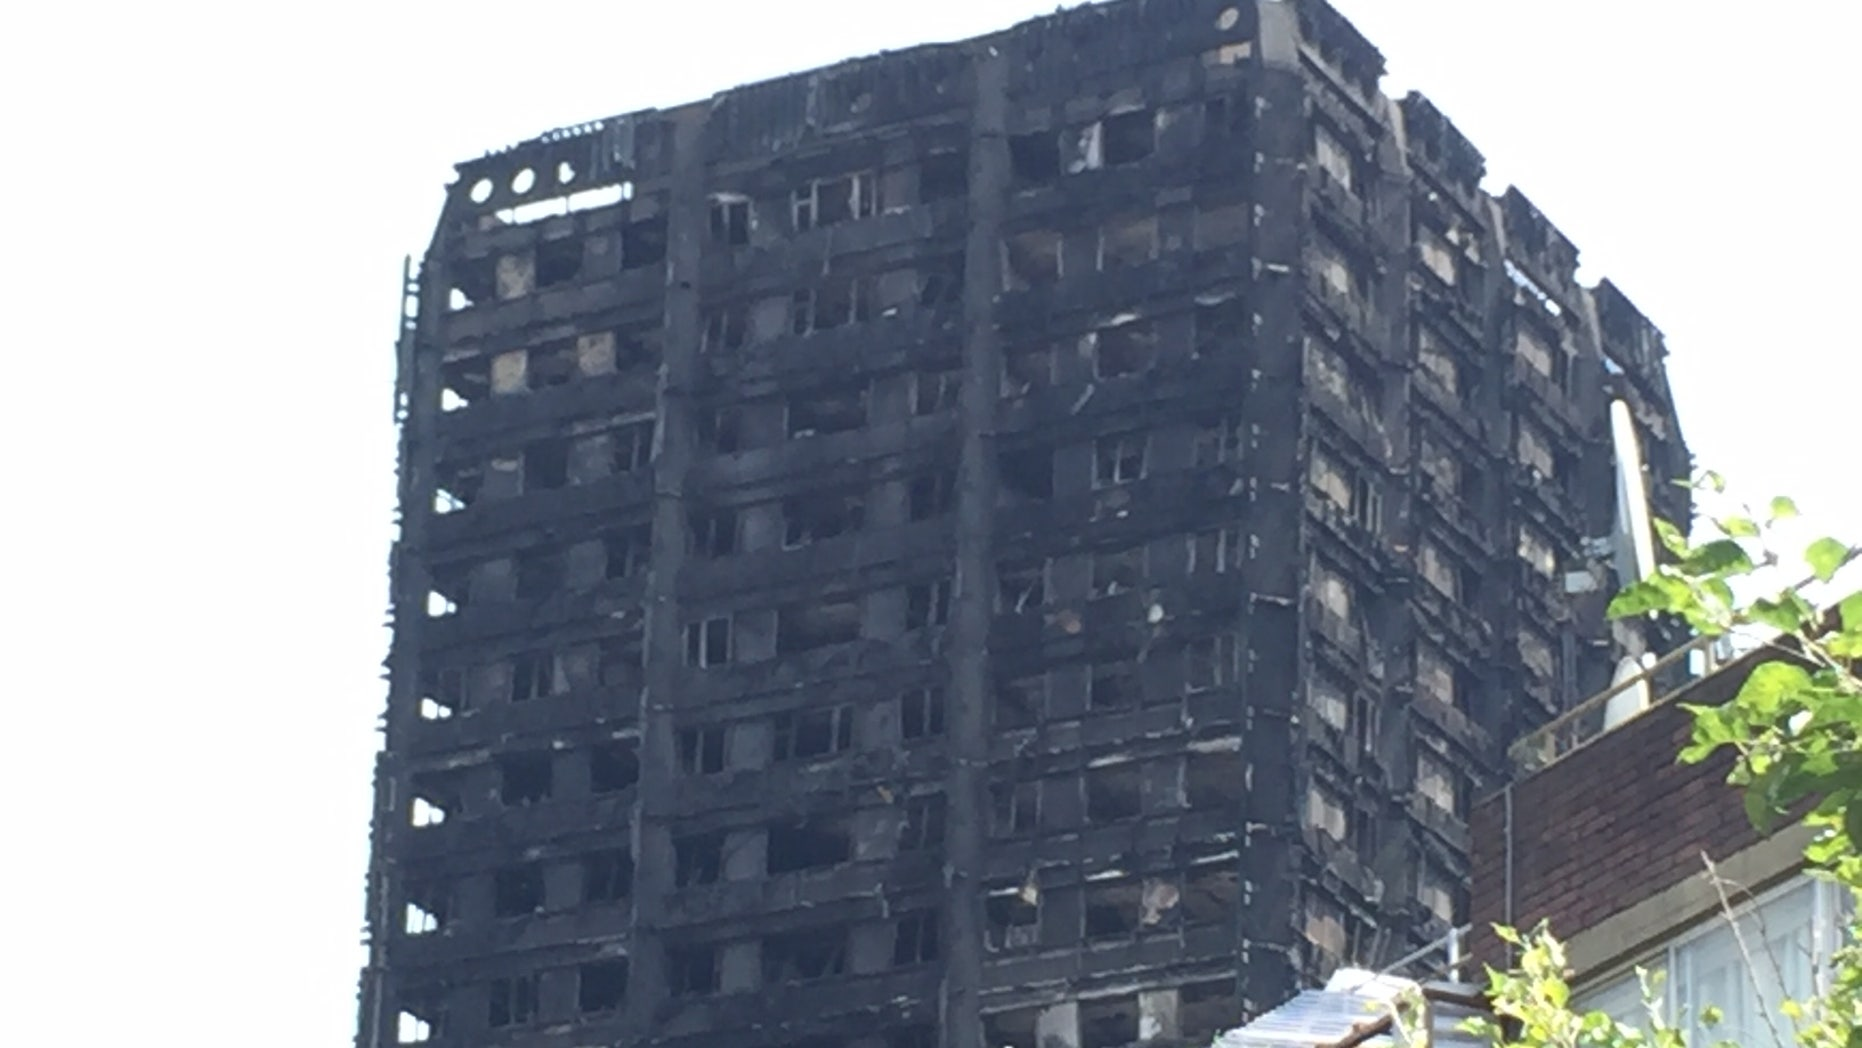 The 24-story building may have gone up in flames because of shortcuts in safety measures.